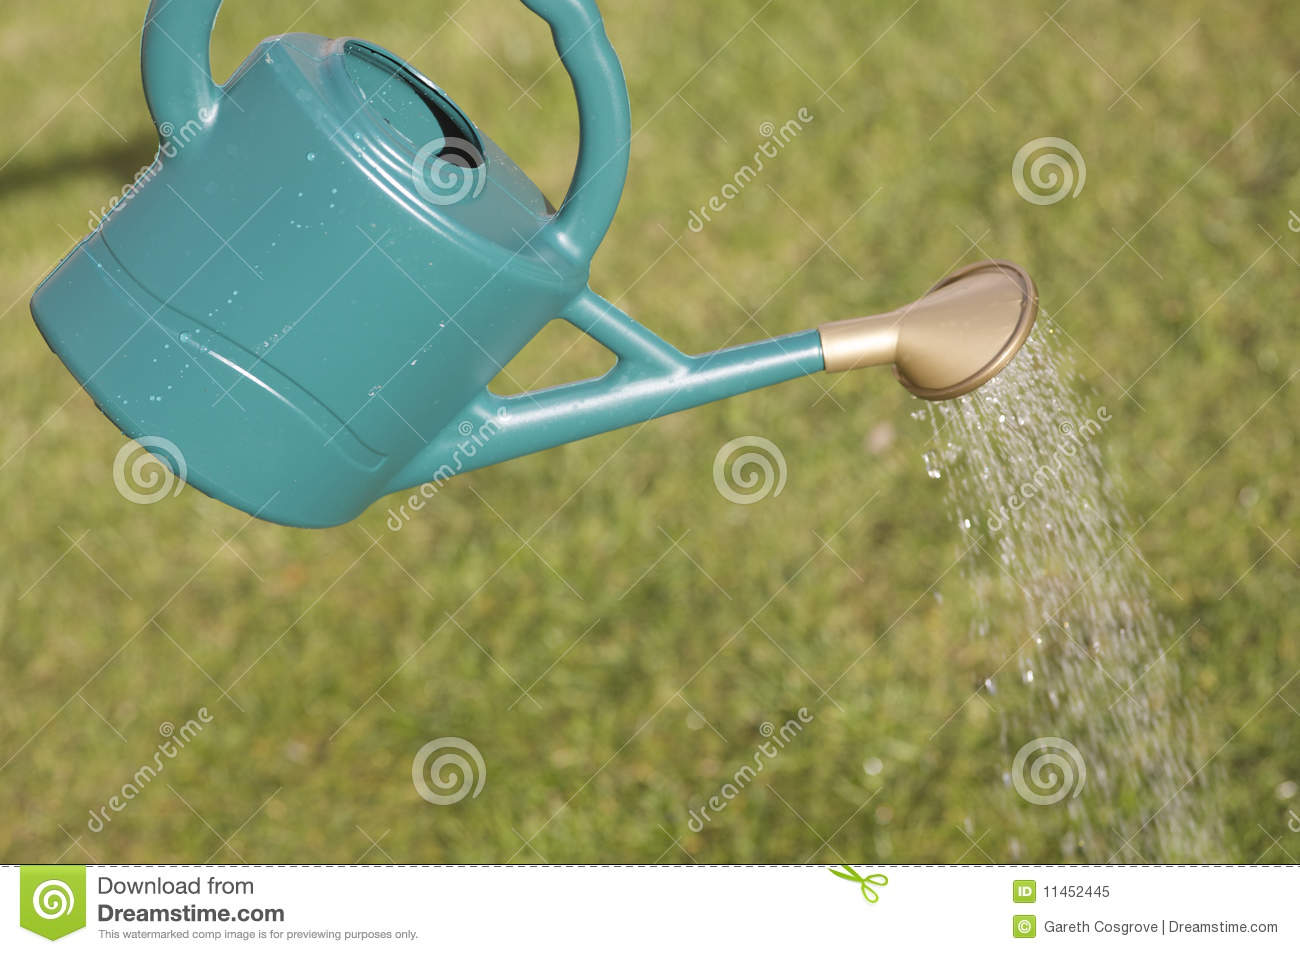 Watering can and grass